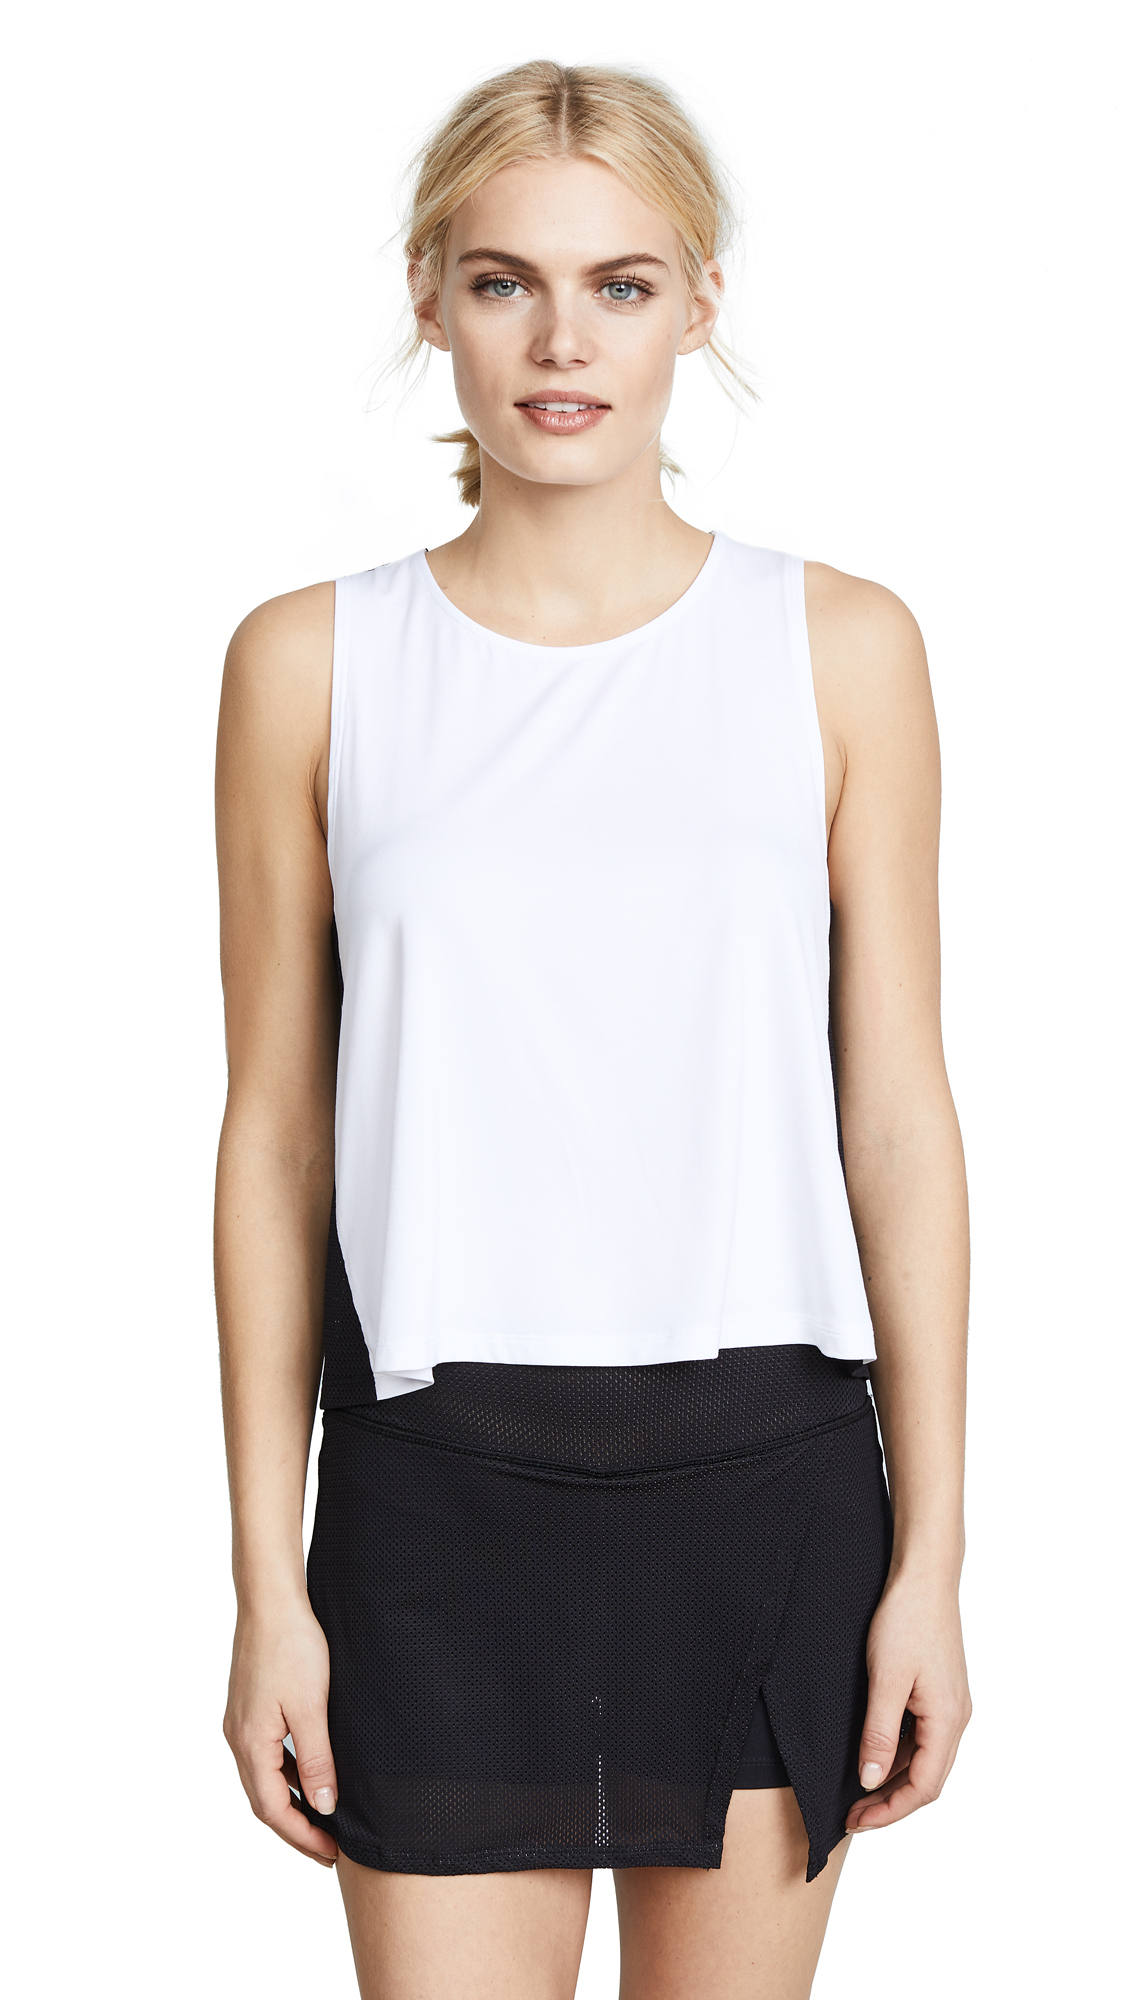 PRISMSPORT DEMI CROP TOP